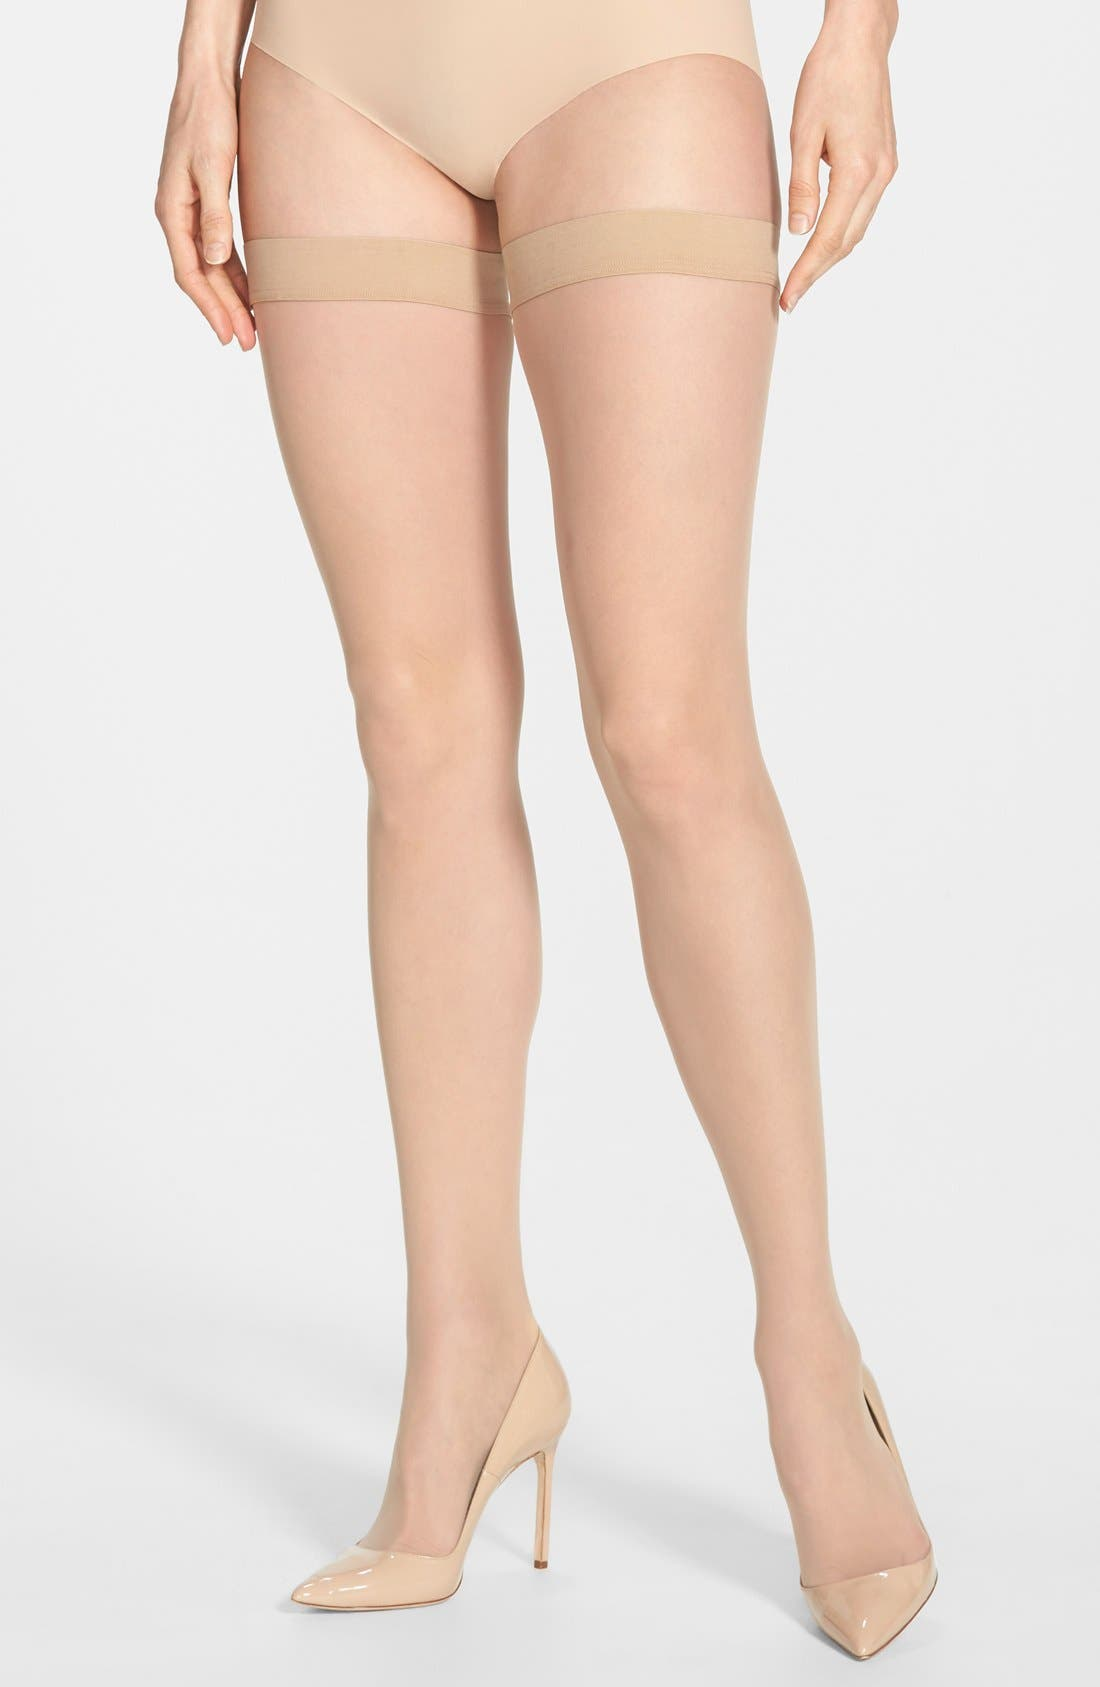 Main Image - Wolford Individual 10 Stay-Up Stockings